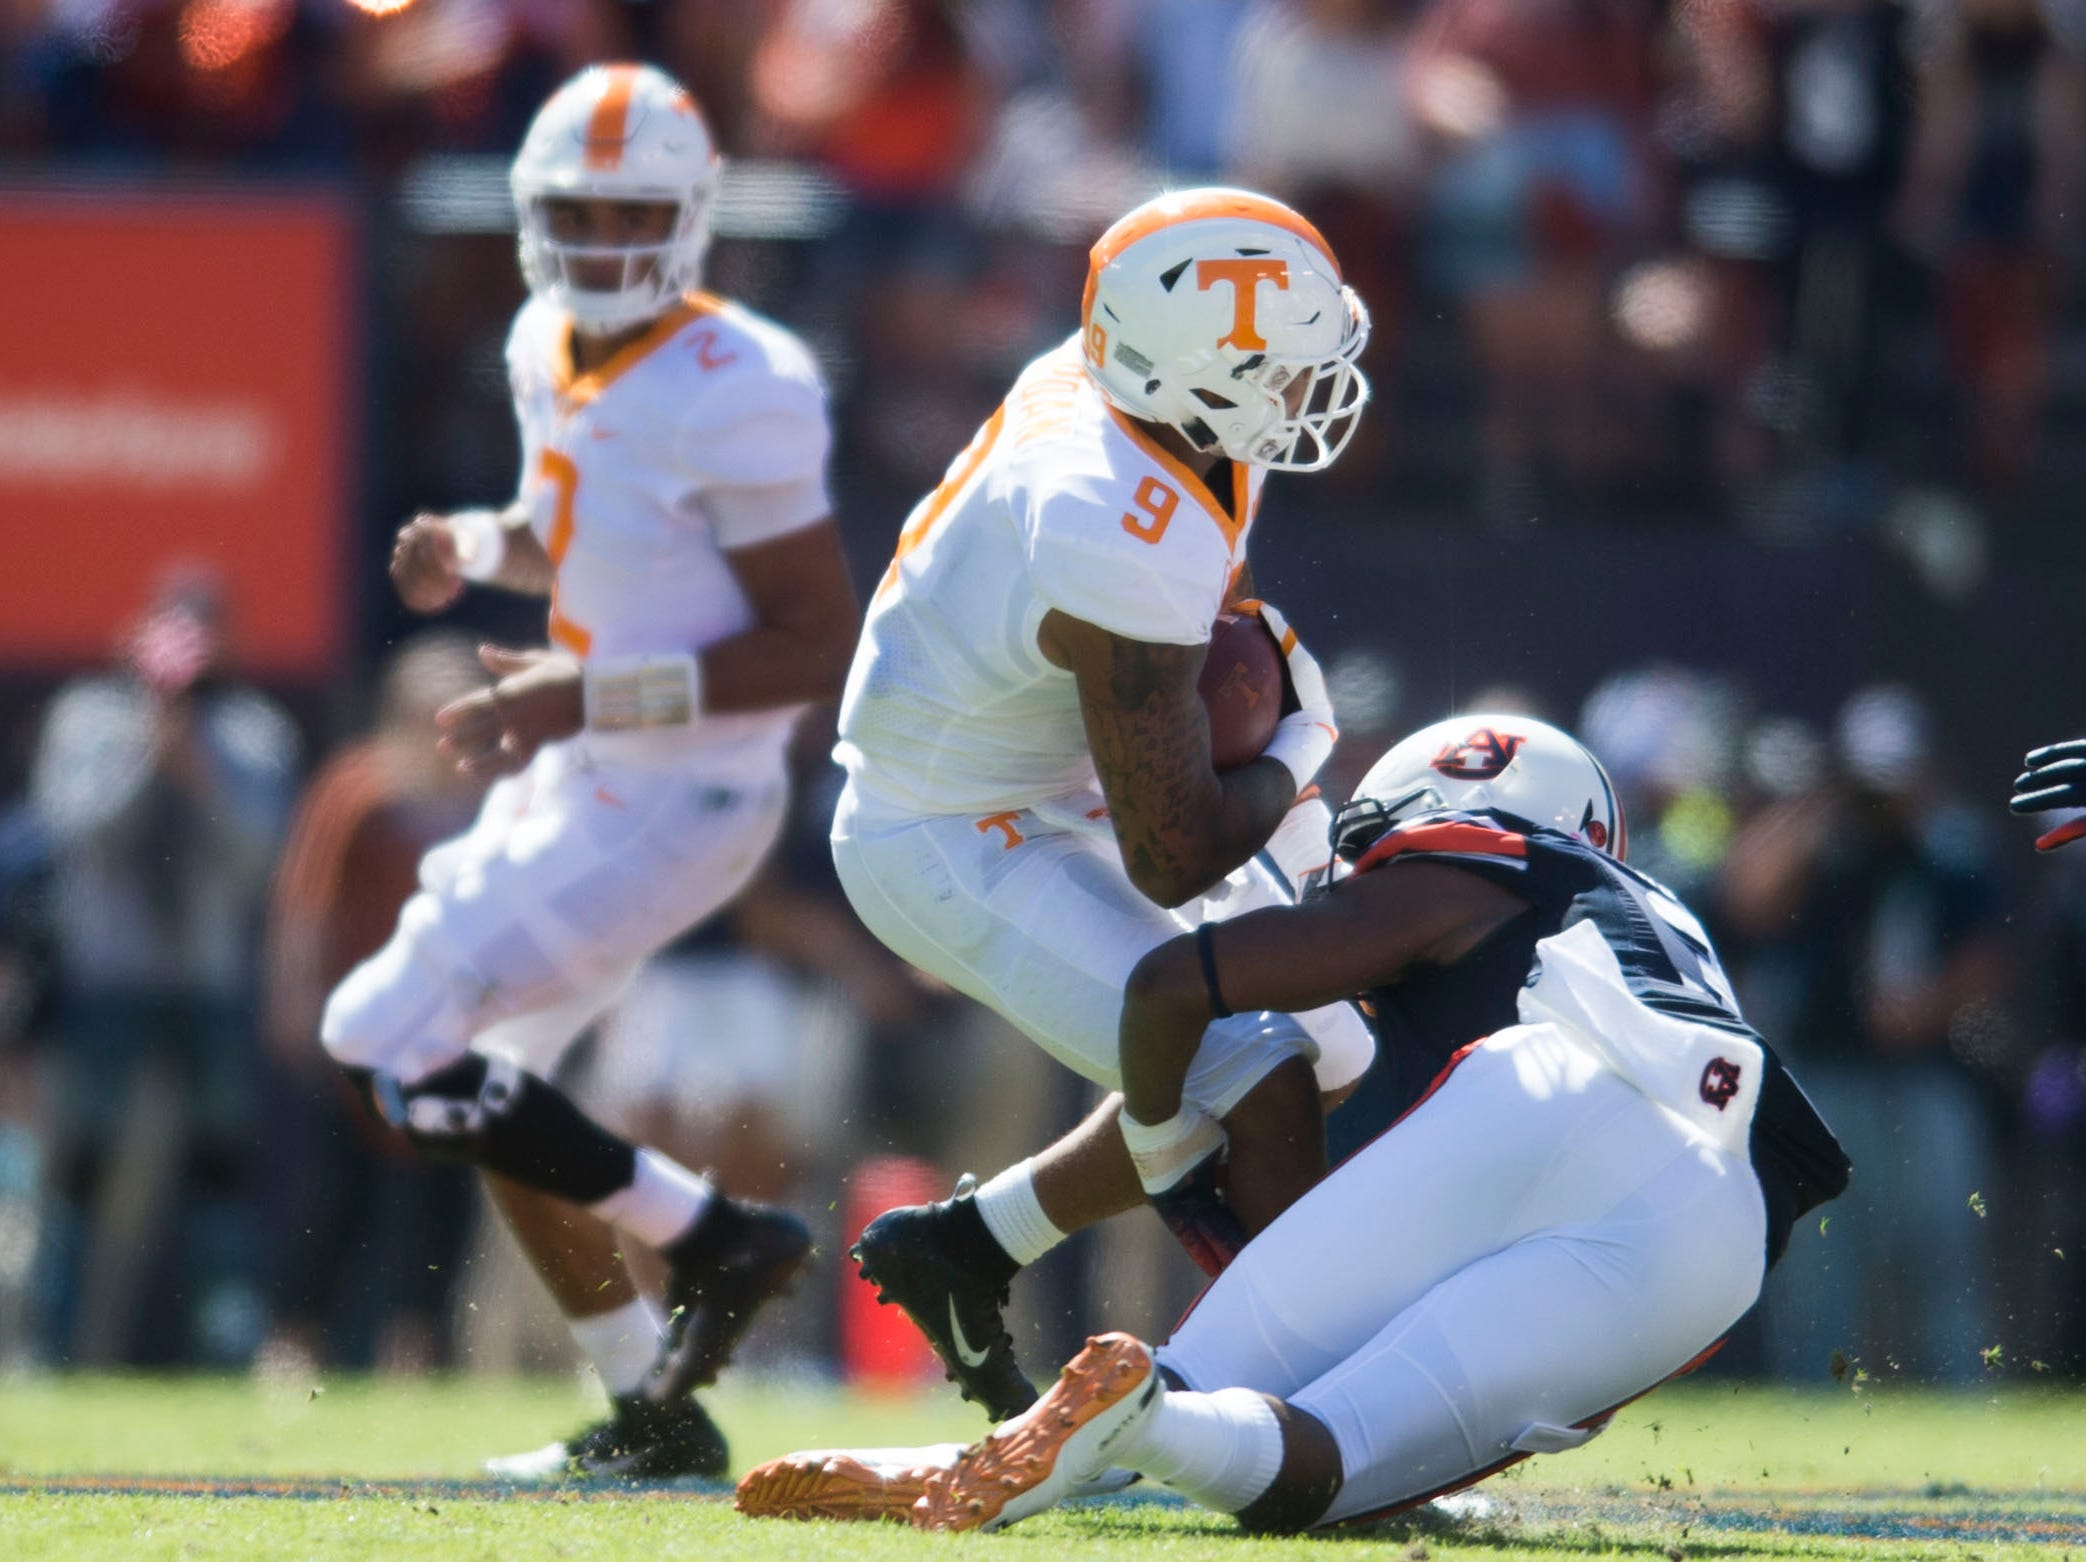 Tennessee running back Tim Jordan (9) is tackled by Auburn defensive lineman Marlon Davidson (3) during a game between Tennessee and Auburn at Jordan-Hare Stadium in Auburn, Ala. Saturday, Oct. 13, 2018.